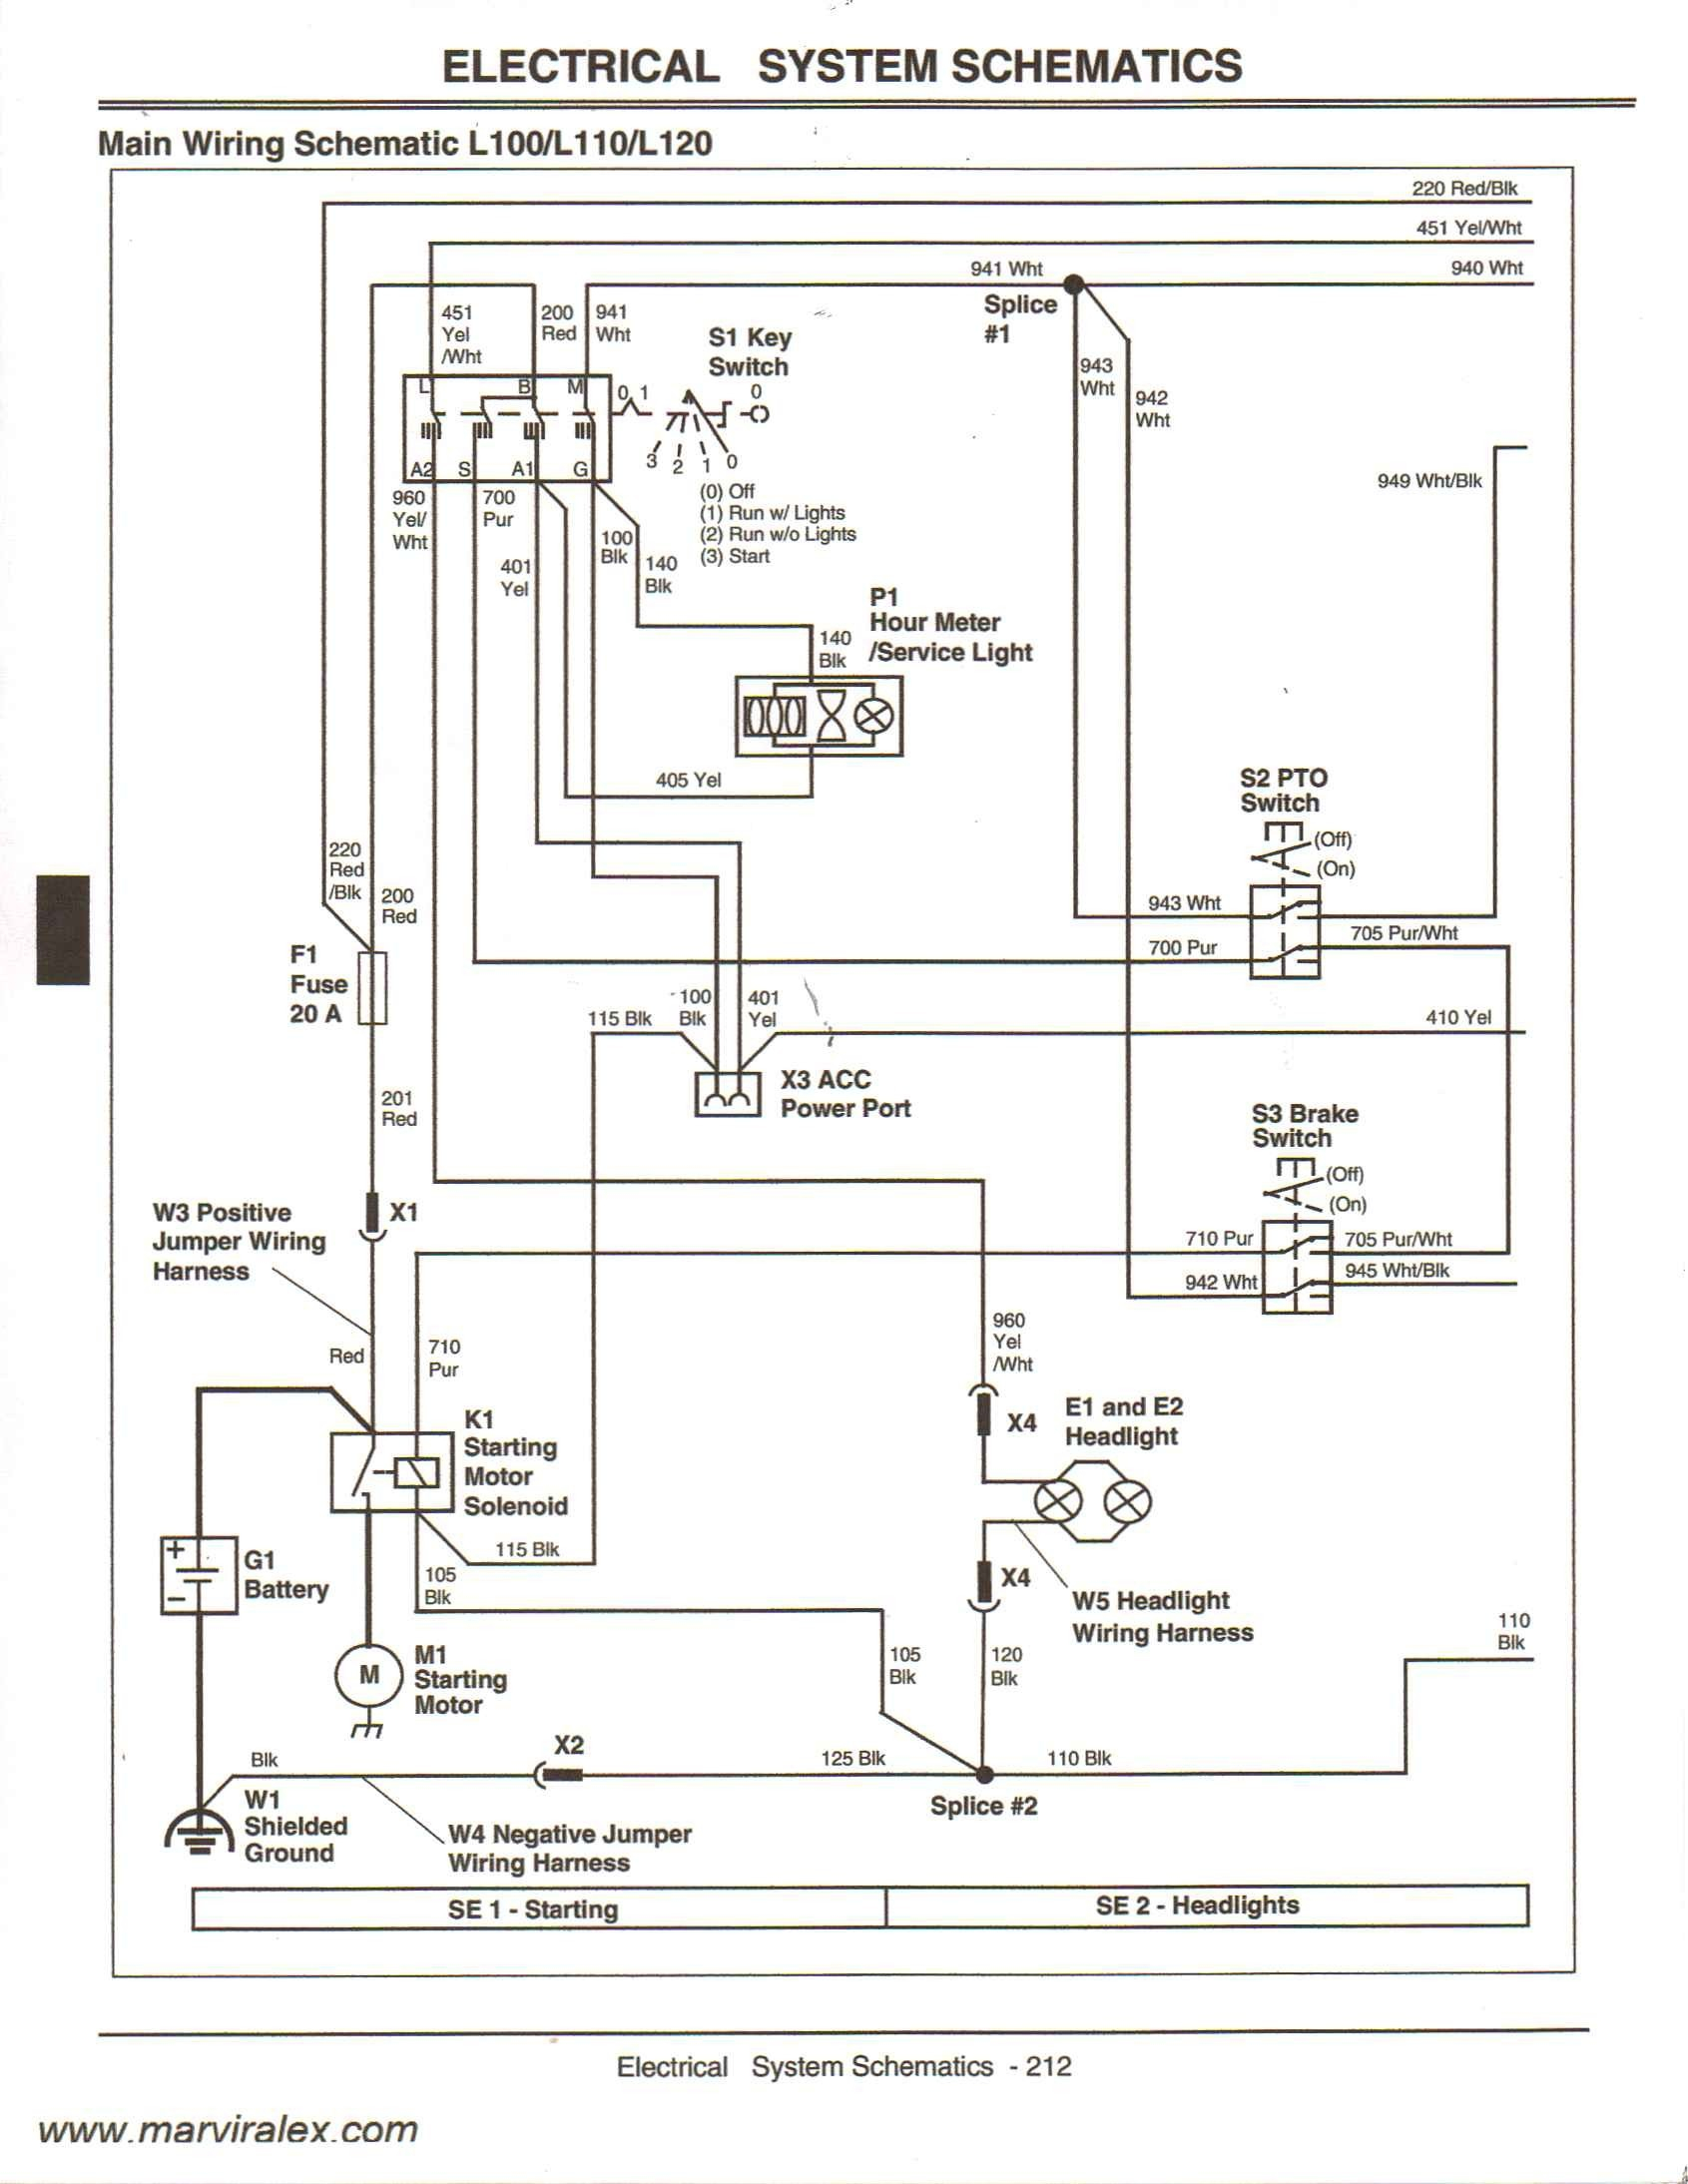 wiring diagram for riding lawn mowers online wiring diagram data collection of wiring diagram for john deere riding lawn mower download